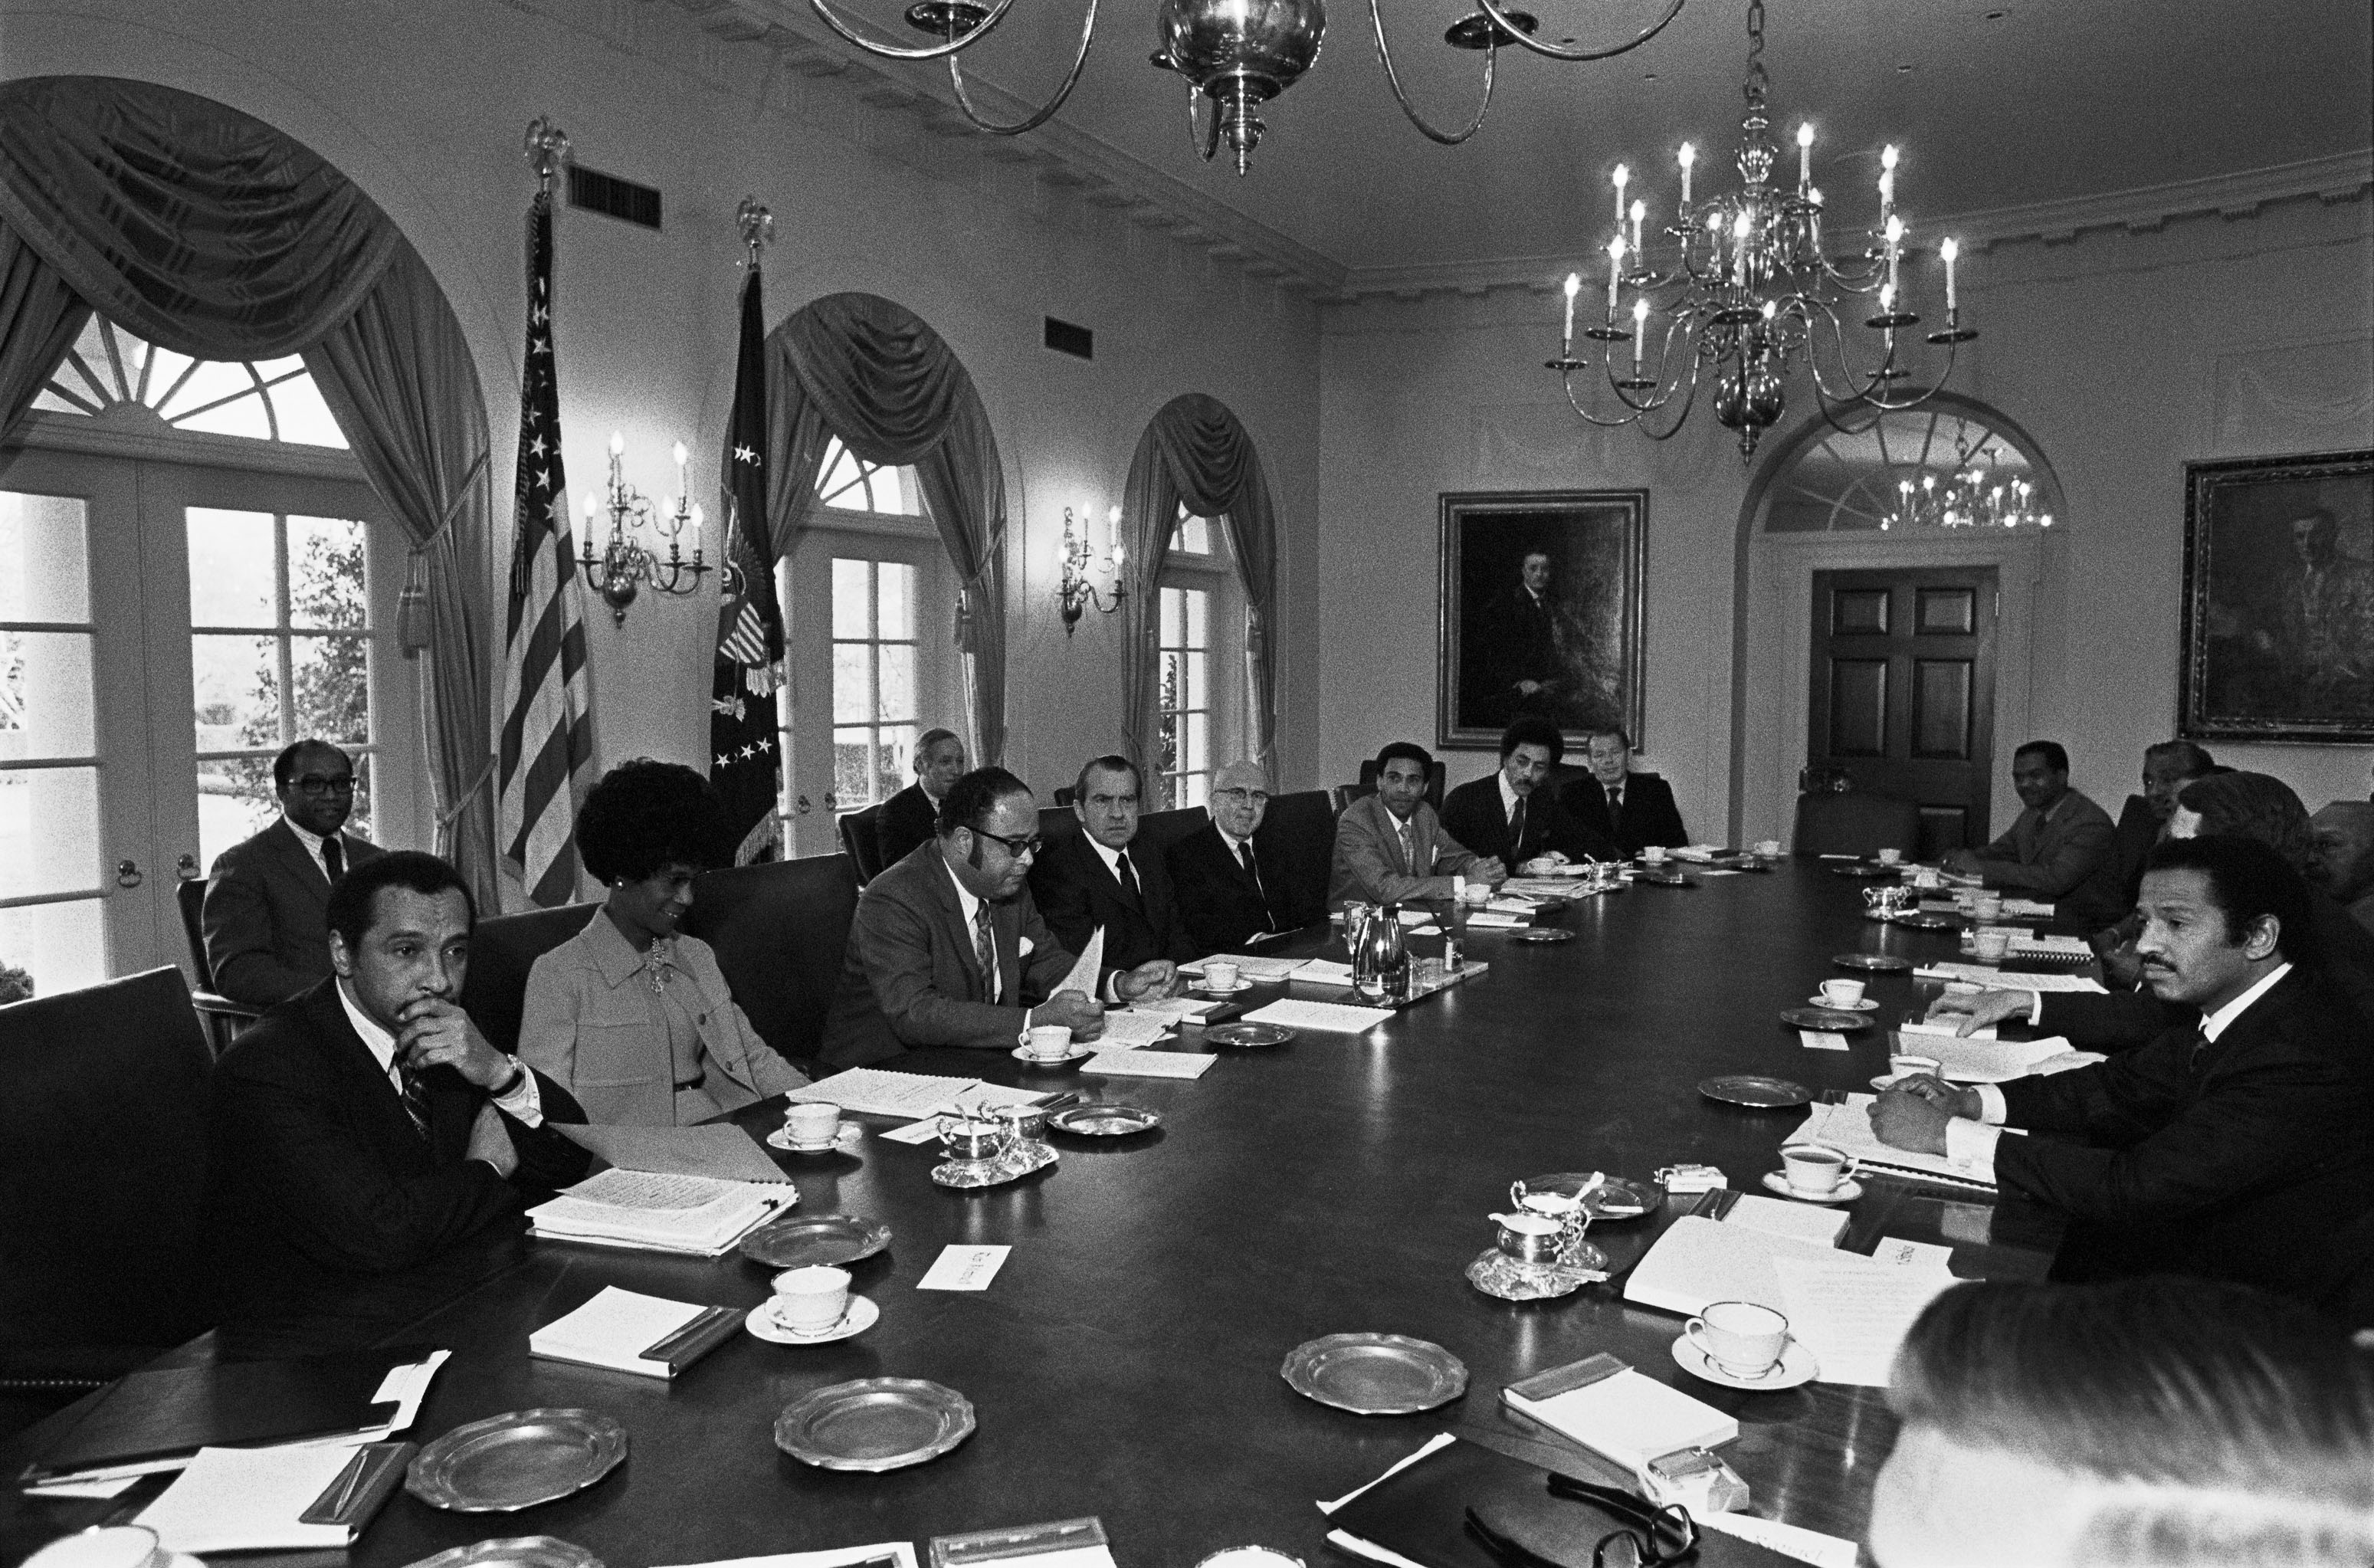 President Nixon meeting members of the Congressional Black Caucus, March 25, 1971. Photo: National Archives.